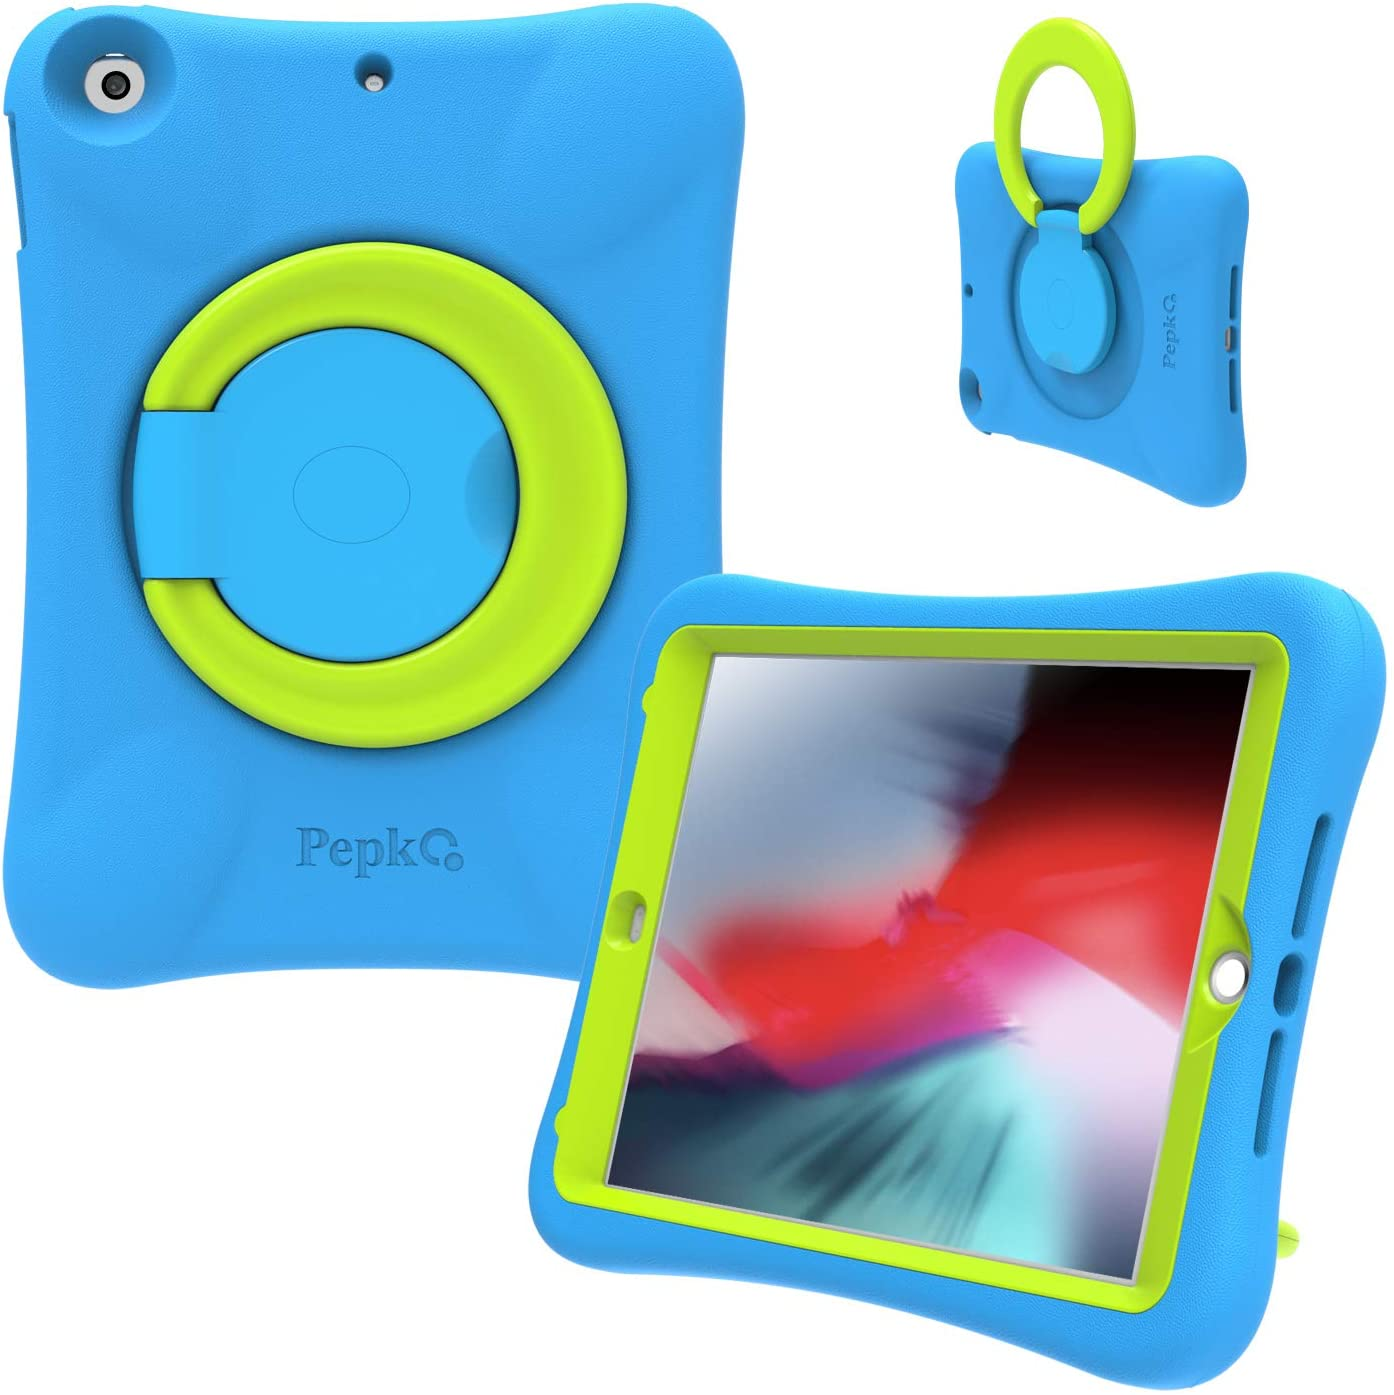 PEPKOO iPad 9.7 2017/2018 Case for Kids - Lightweight Shockproof Handle Stand Rugged Cover for Apple iPad 6th Generation/5th Gen/Air/Air 2 (Blue/Green)